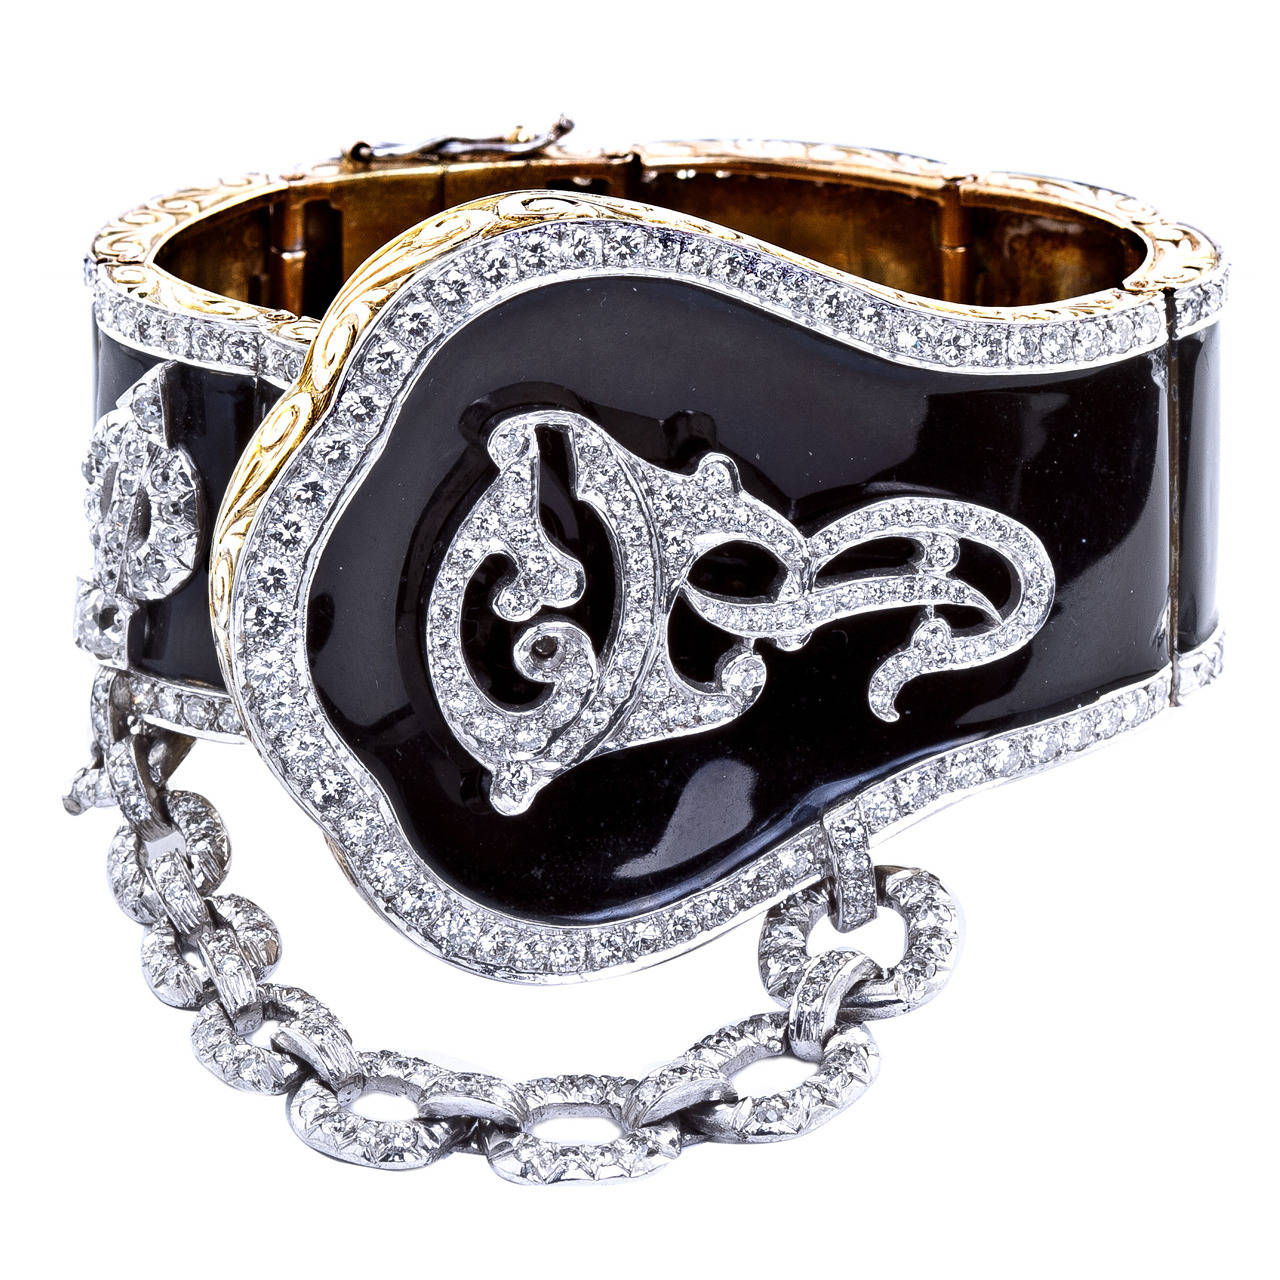 Gone with the Wind Revival Black Enamel Diamond Cuff Bracelet 1